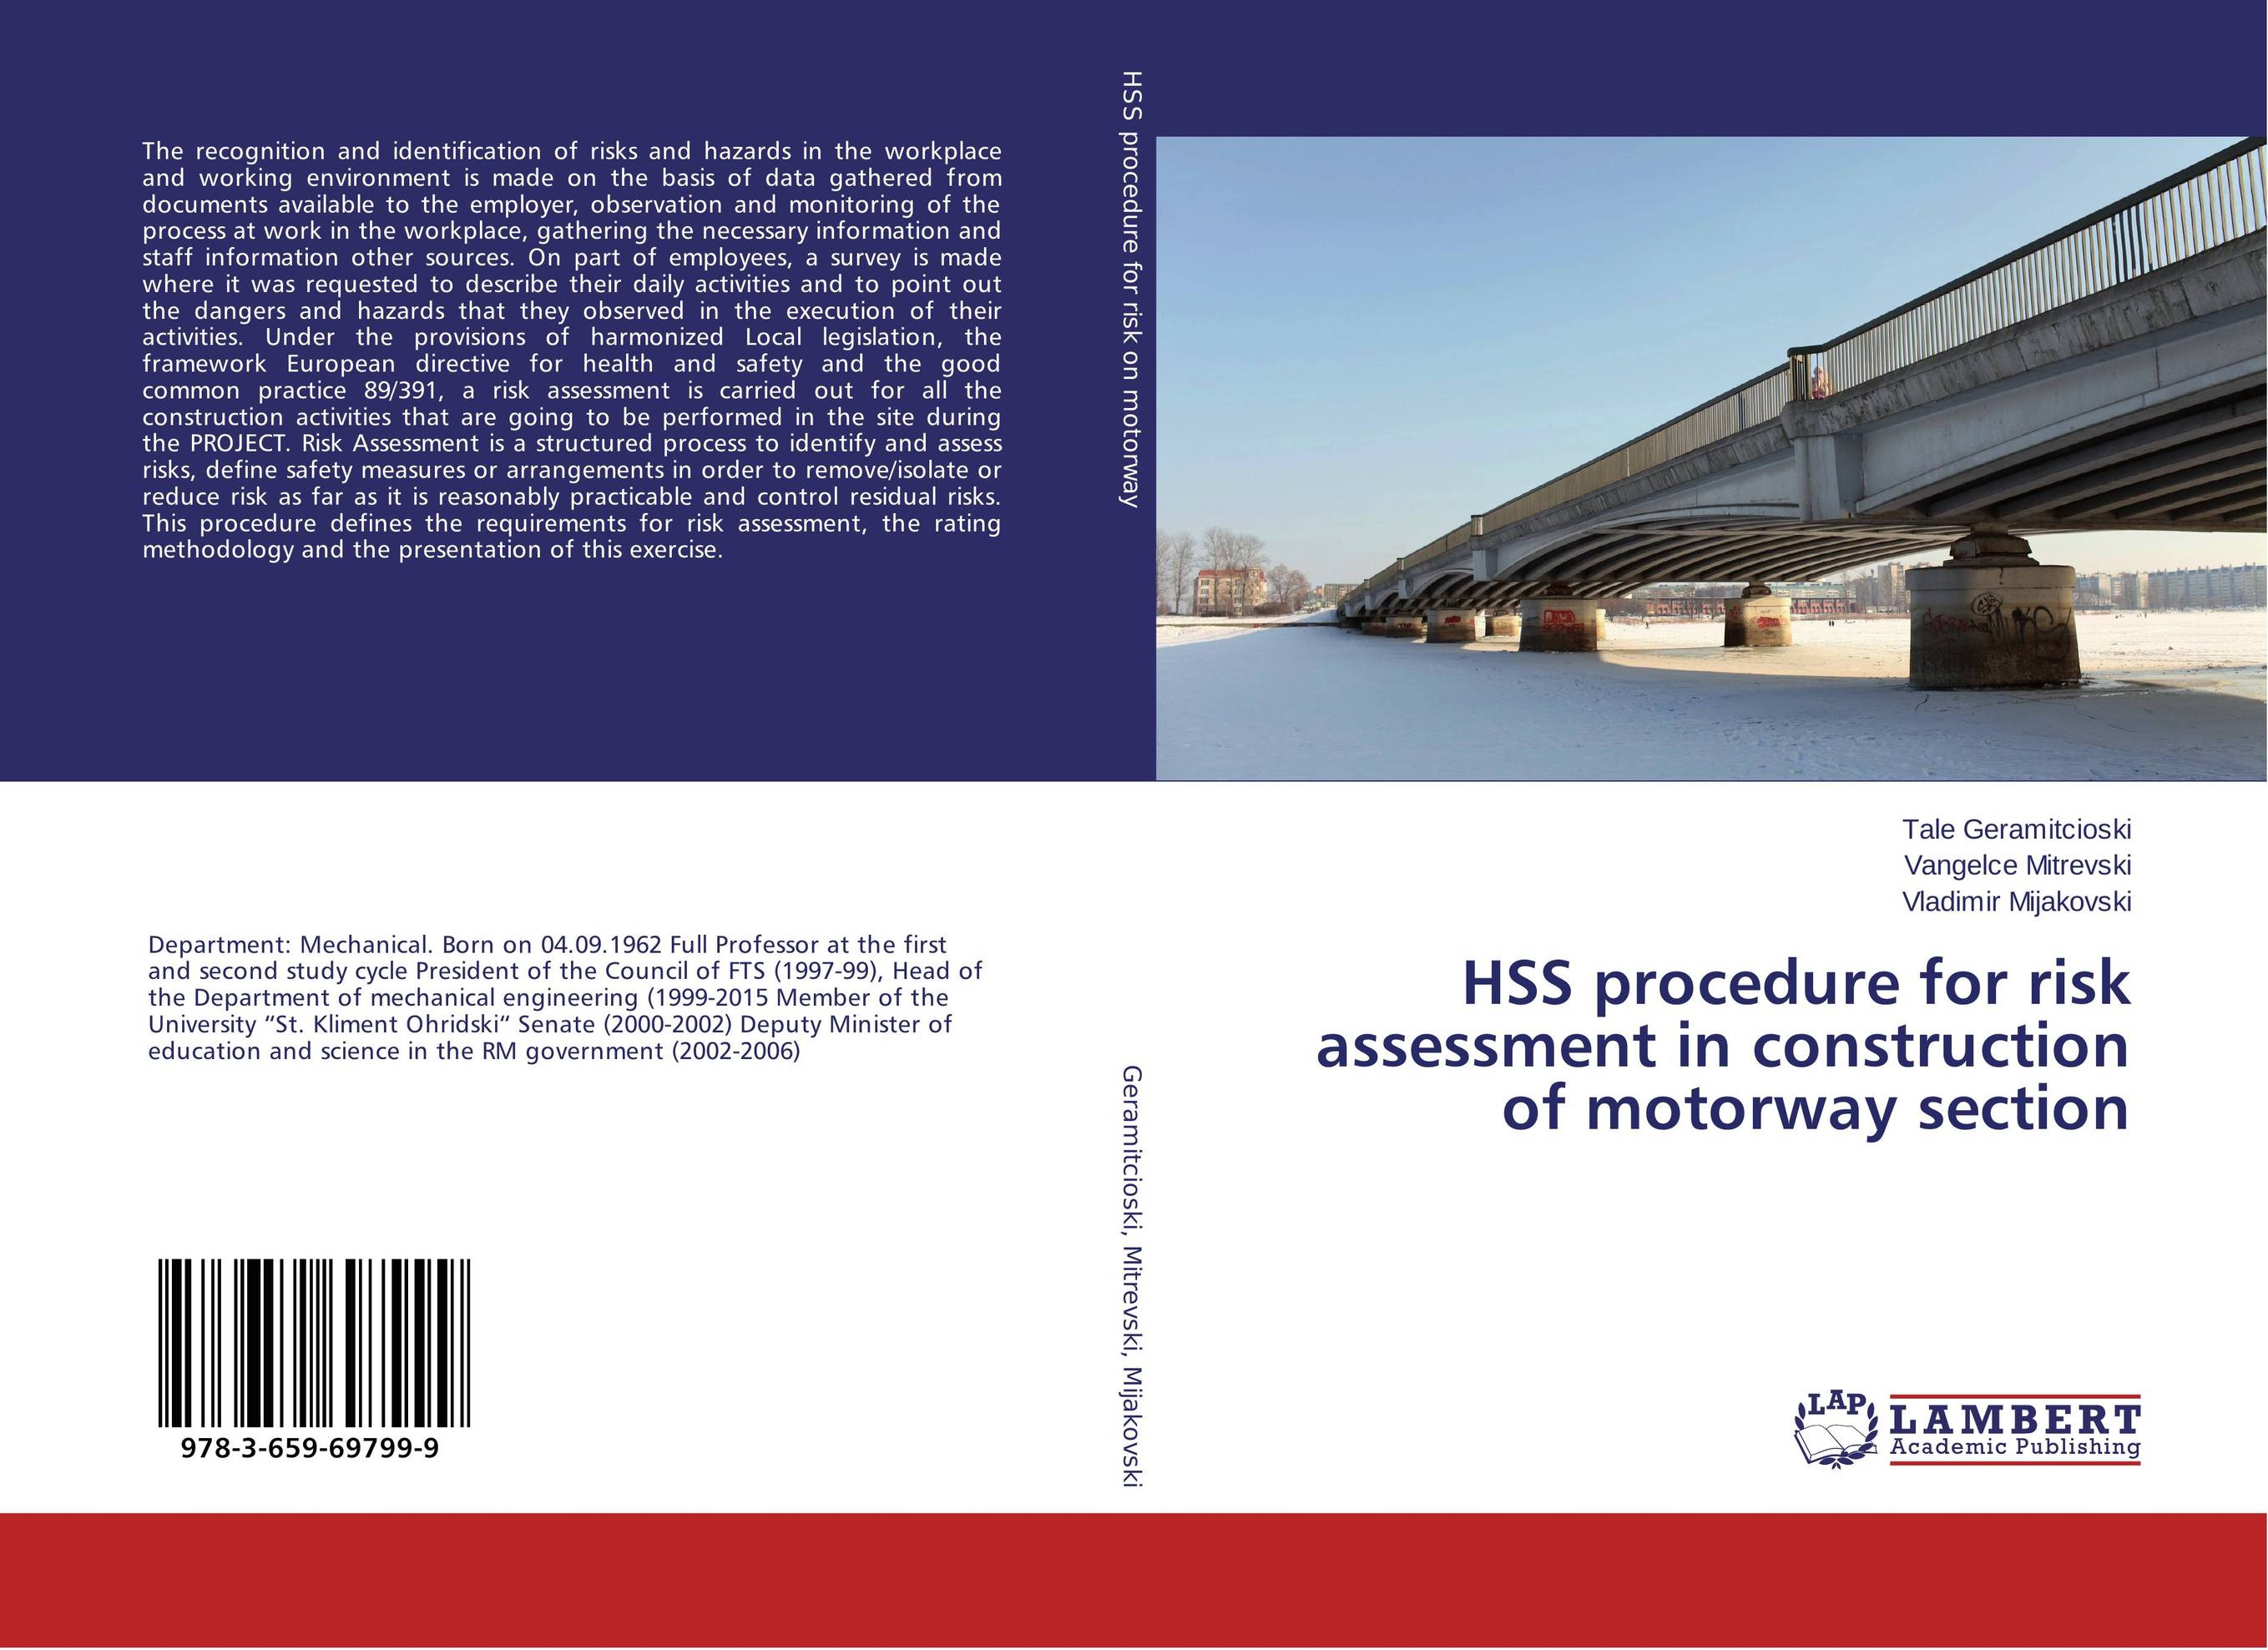 HSS procedure for risk assessment in construction of motorway section risk regulation and administrative constitutionalism